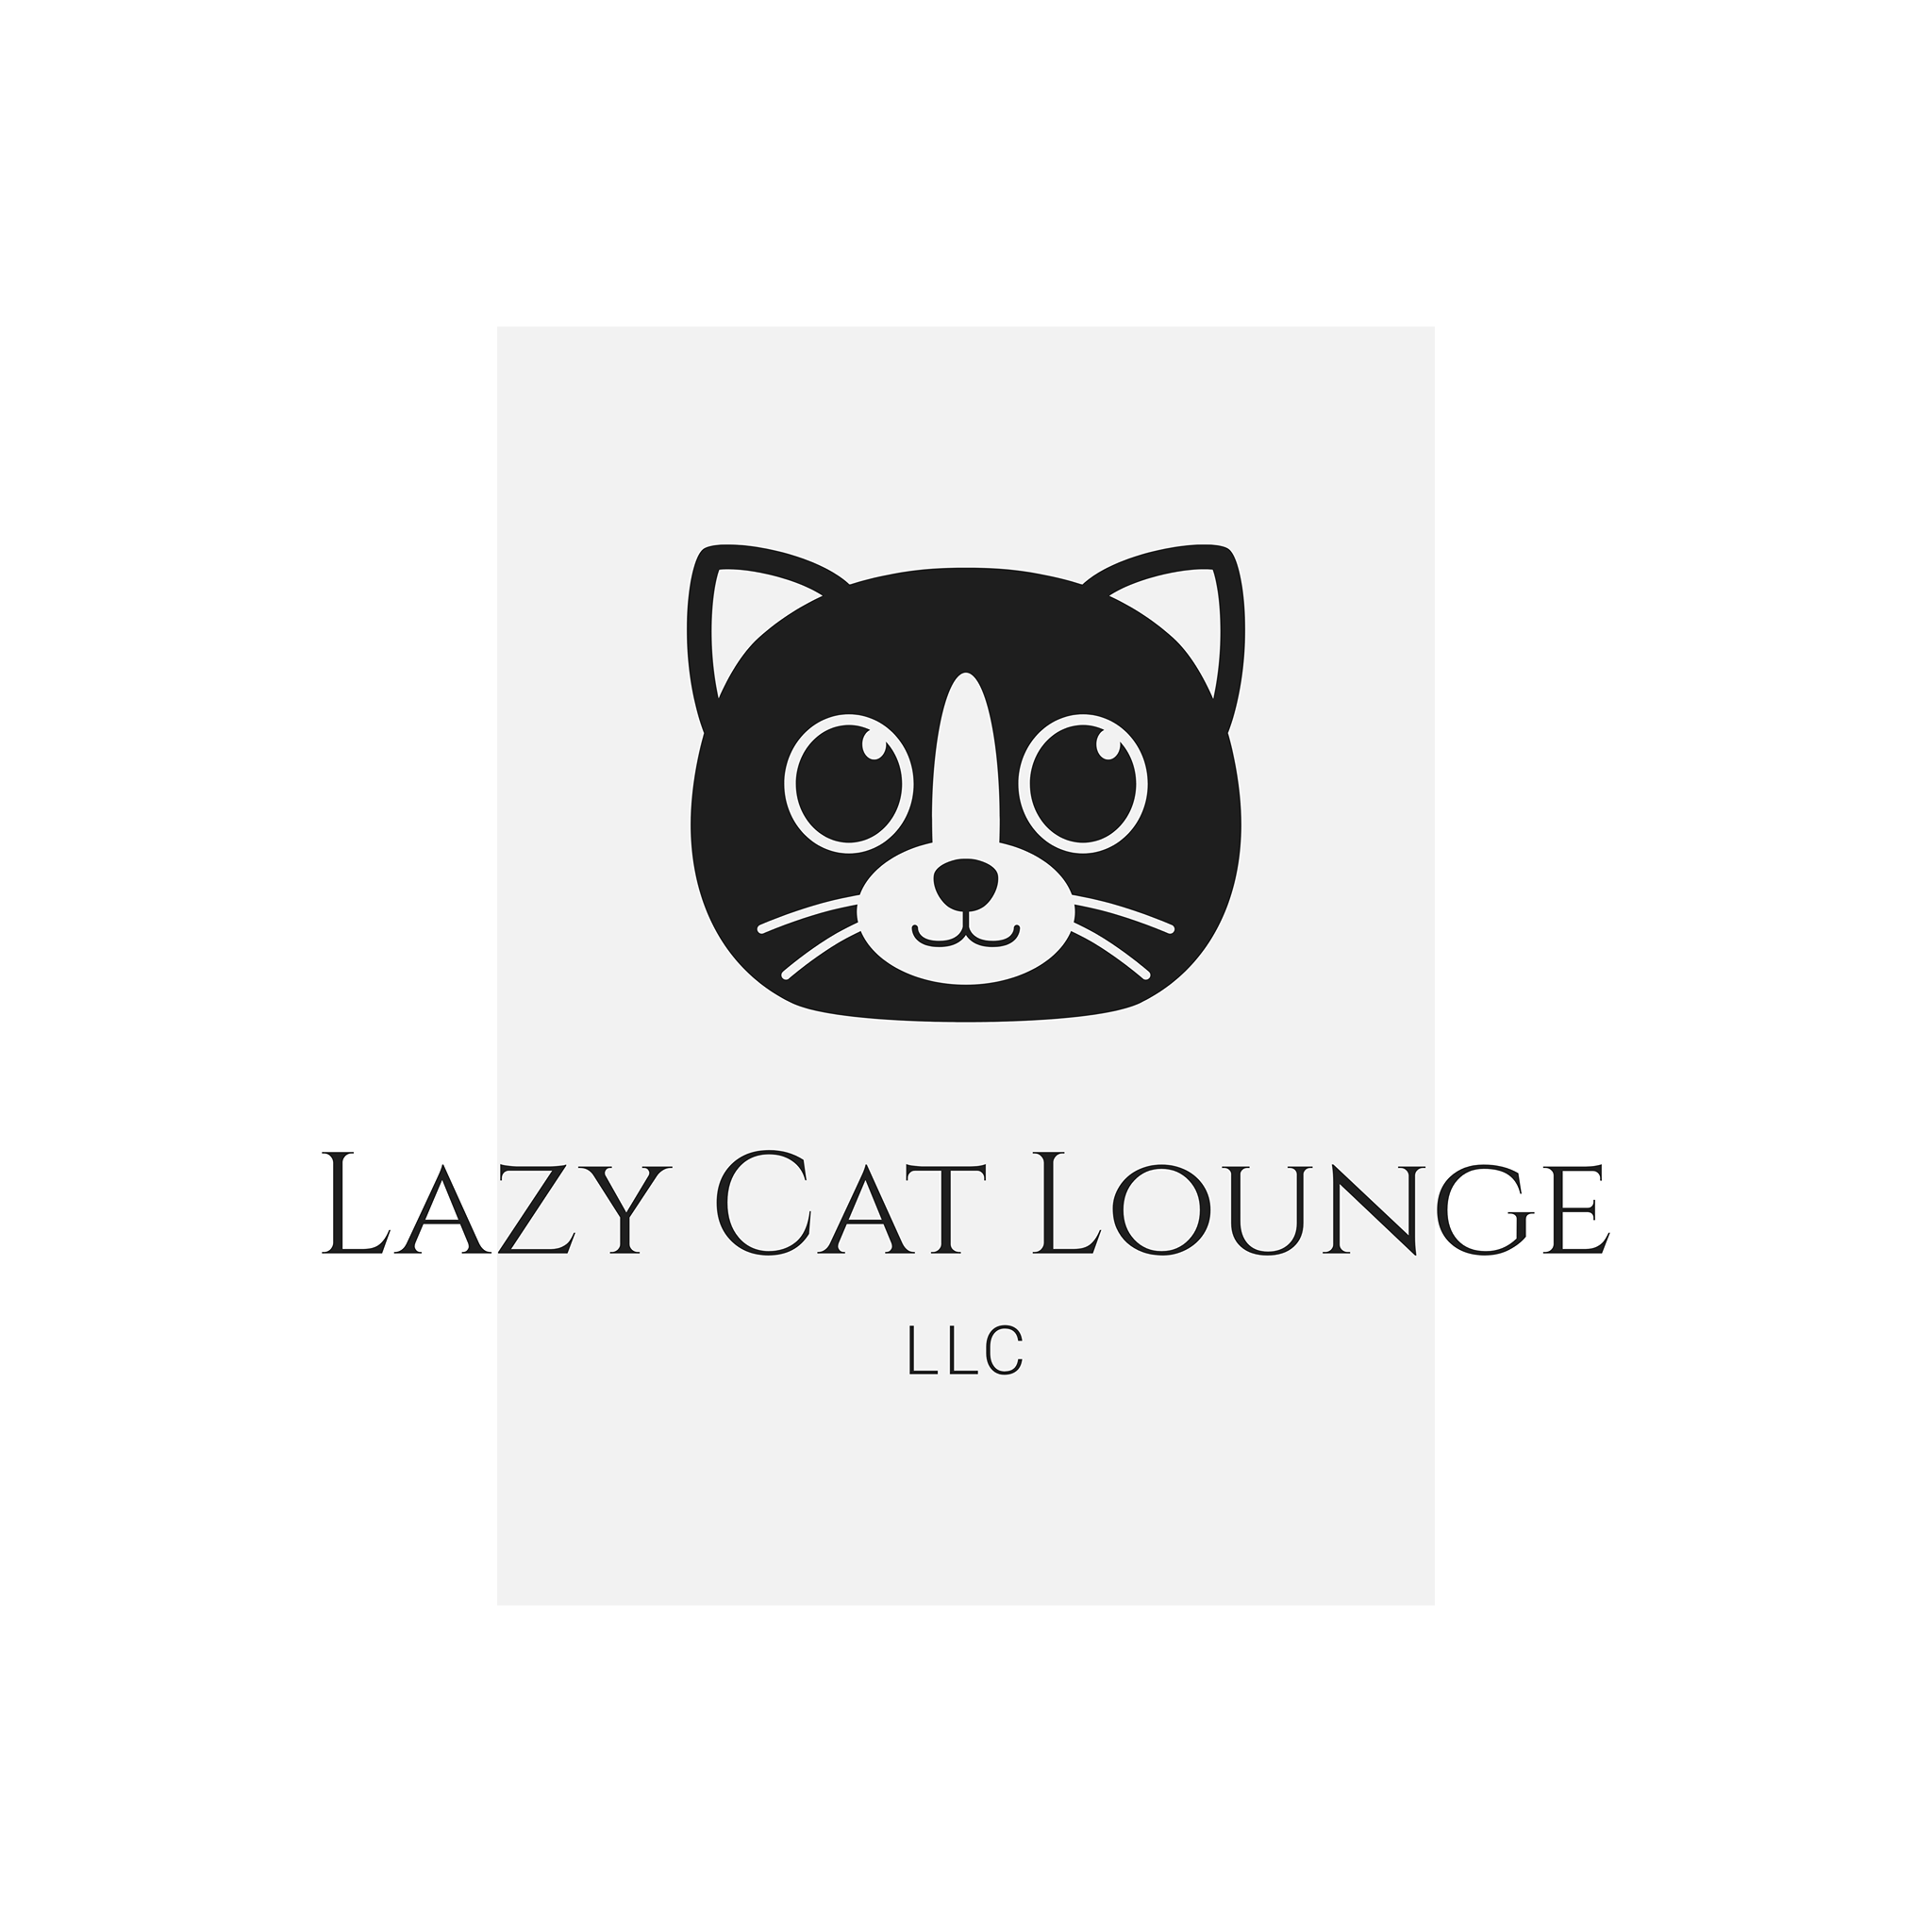 Lazy Cat Lounge